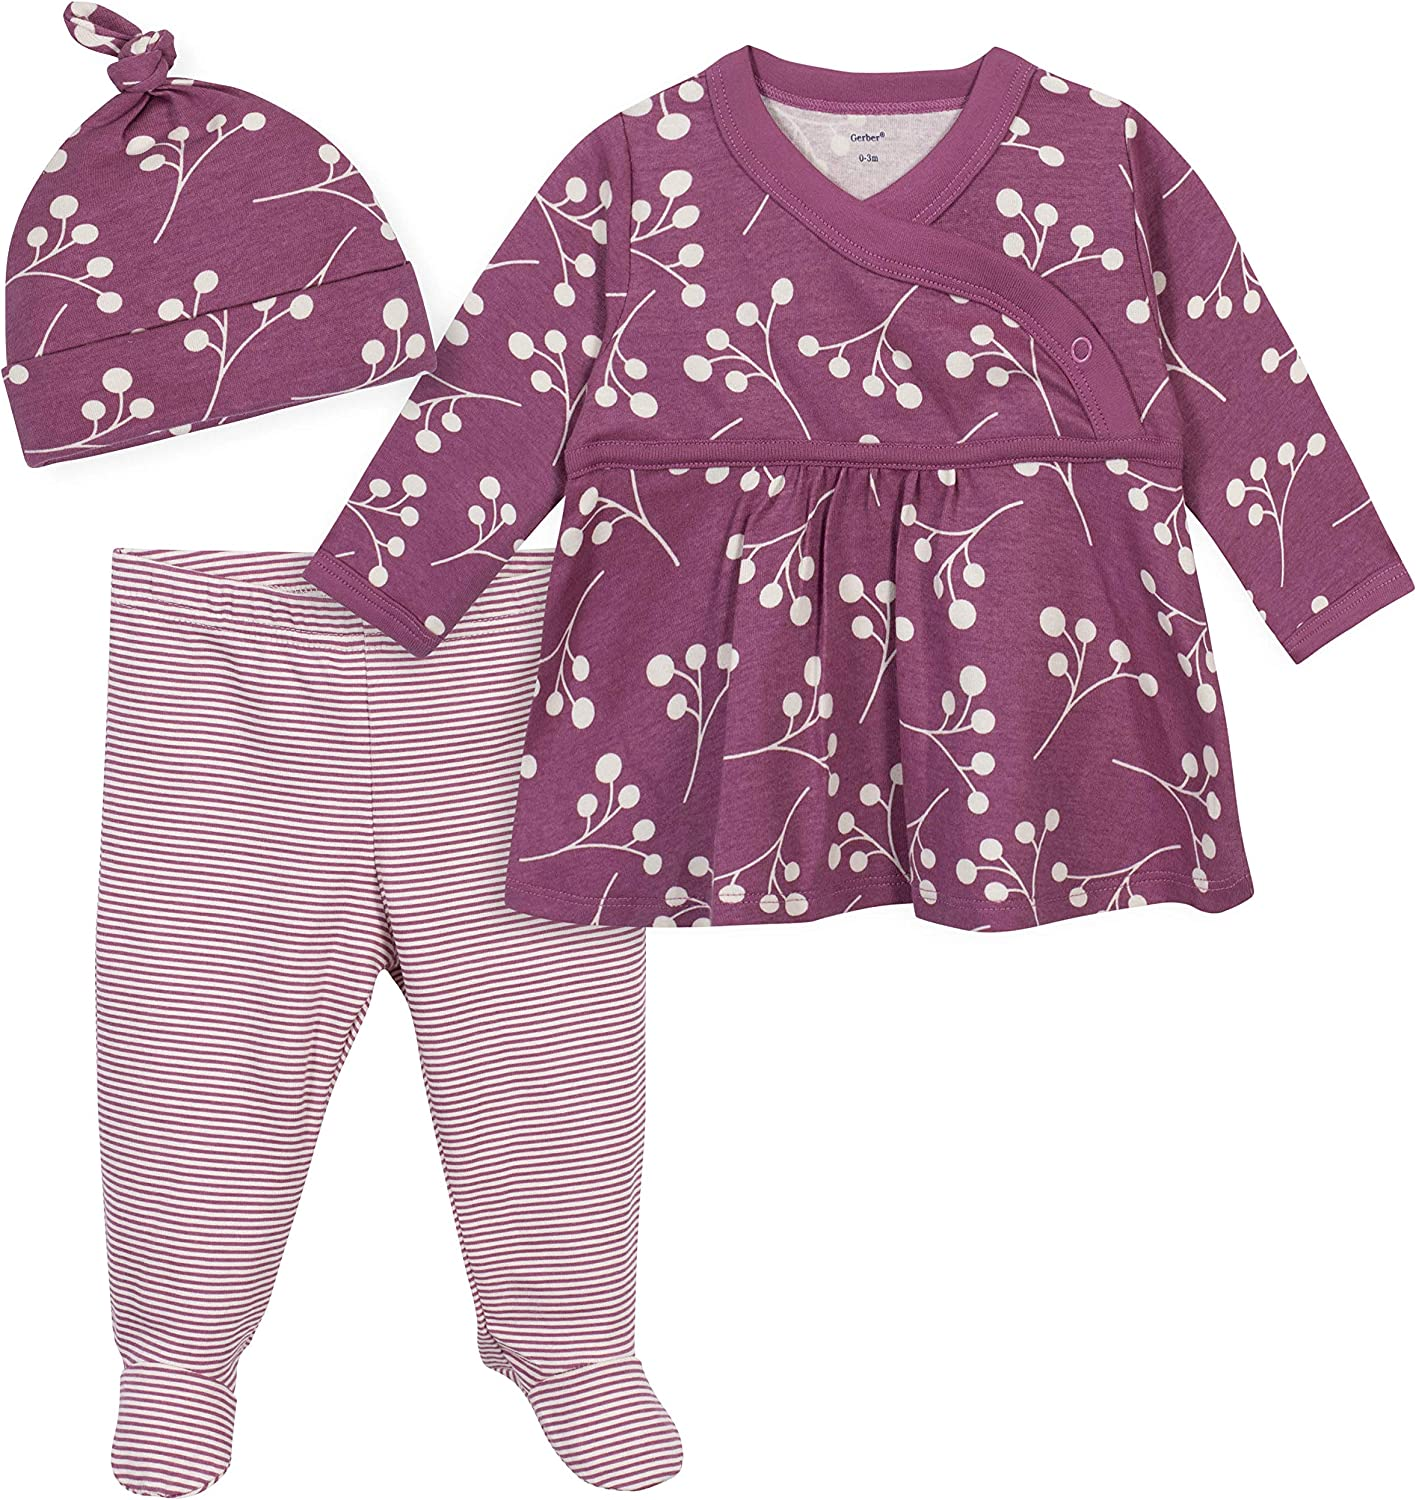 Grow by Gerber Baby Girl's Organic 3-Piece Shirt, Footed Pant, and Cap Set Pants, Pink, 0-3 Months